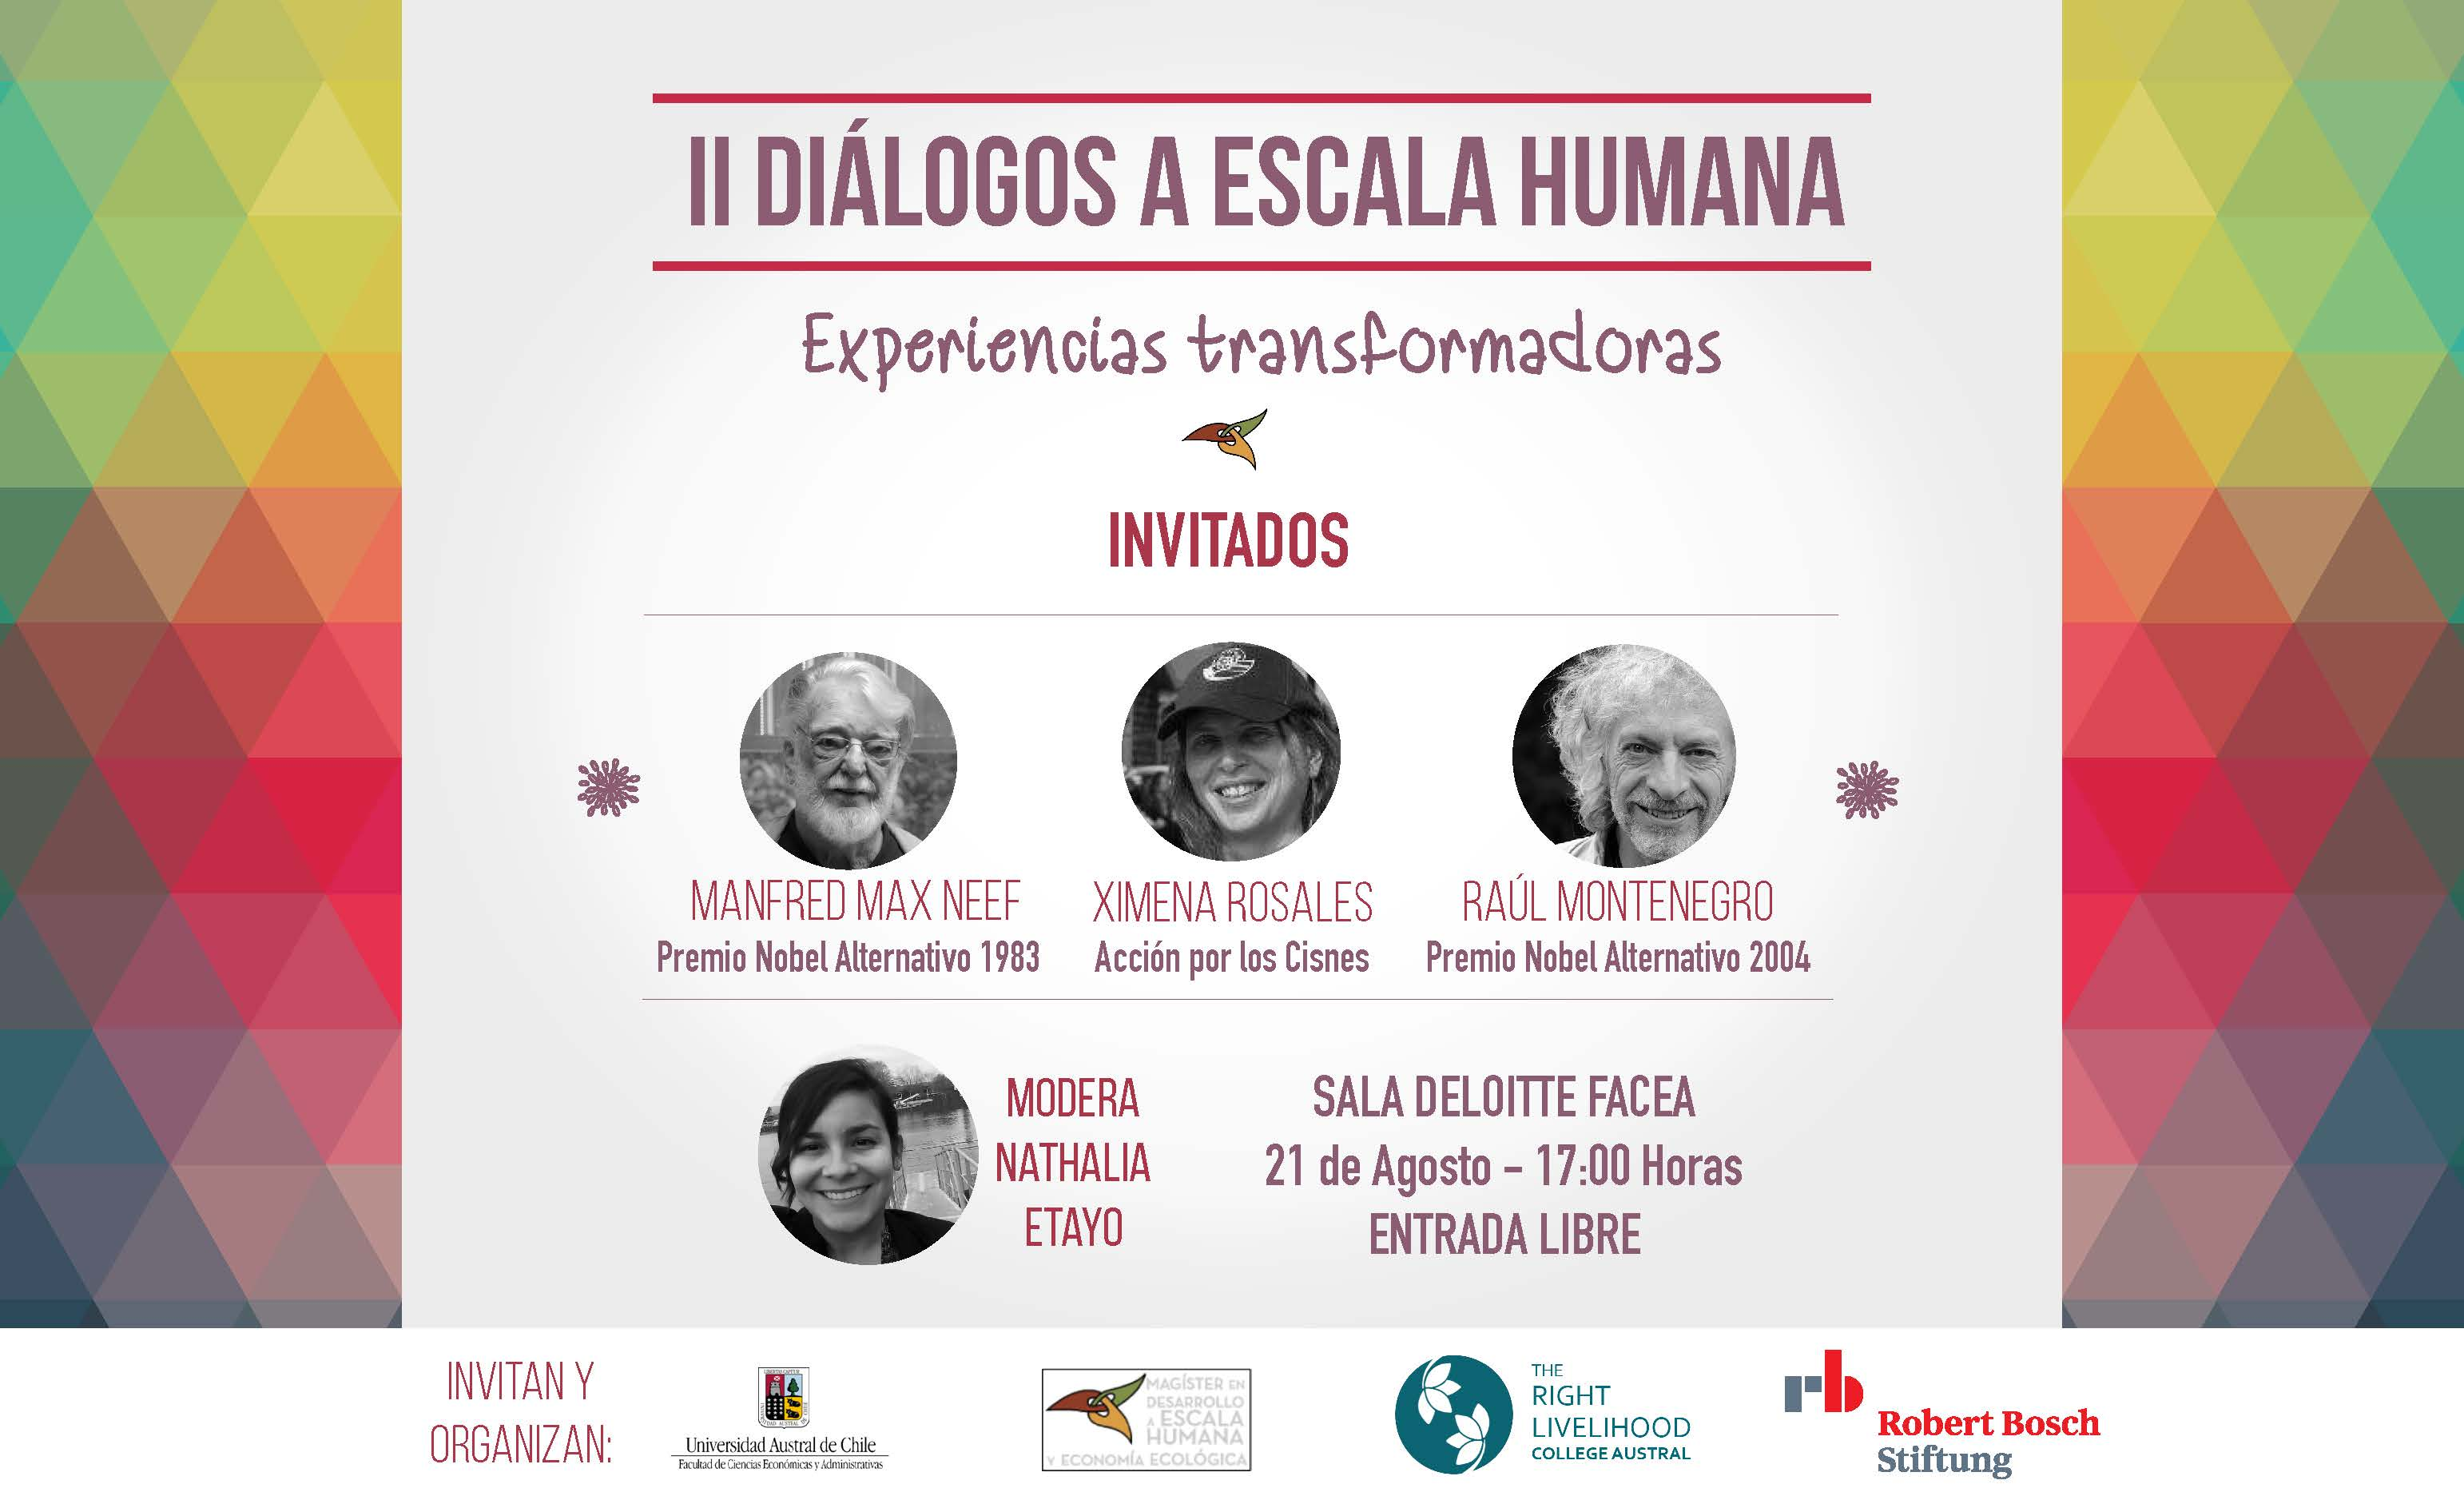 RLC Campus Valdivia organises Dialogues on Human Scale